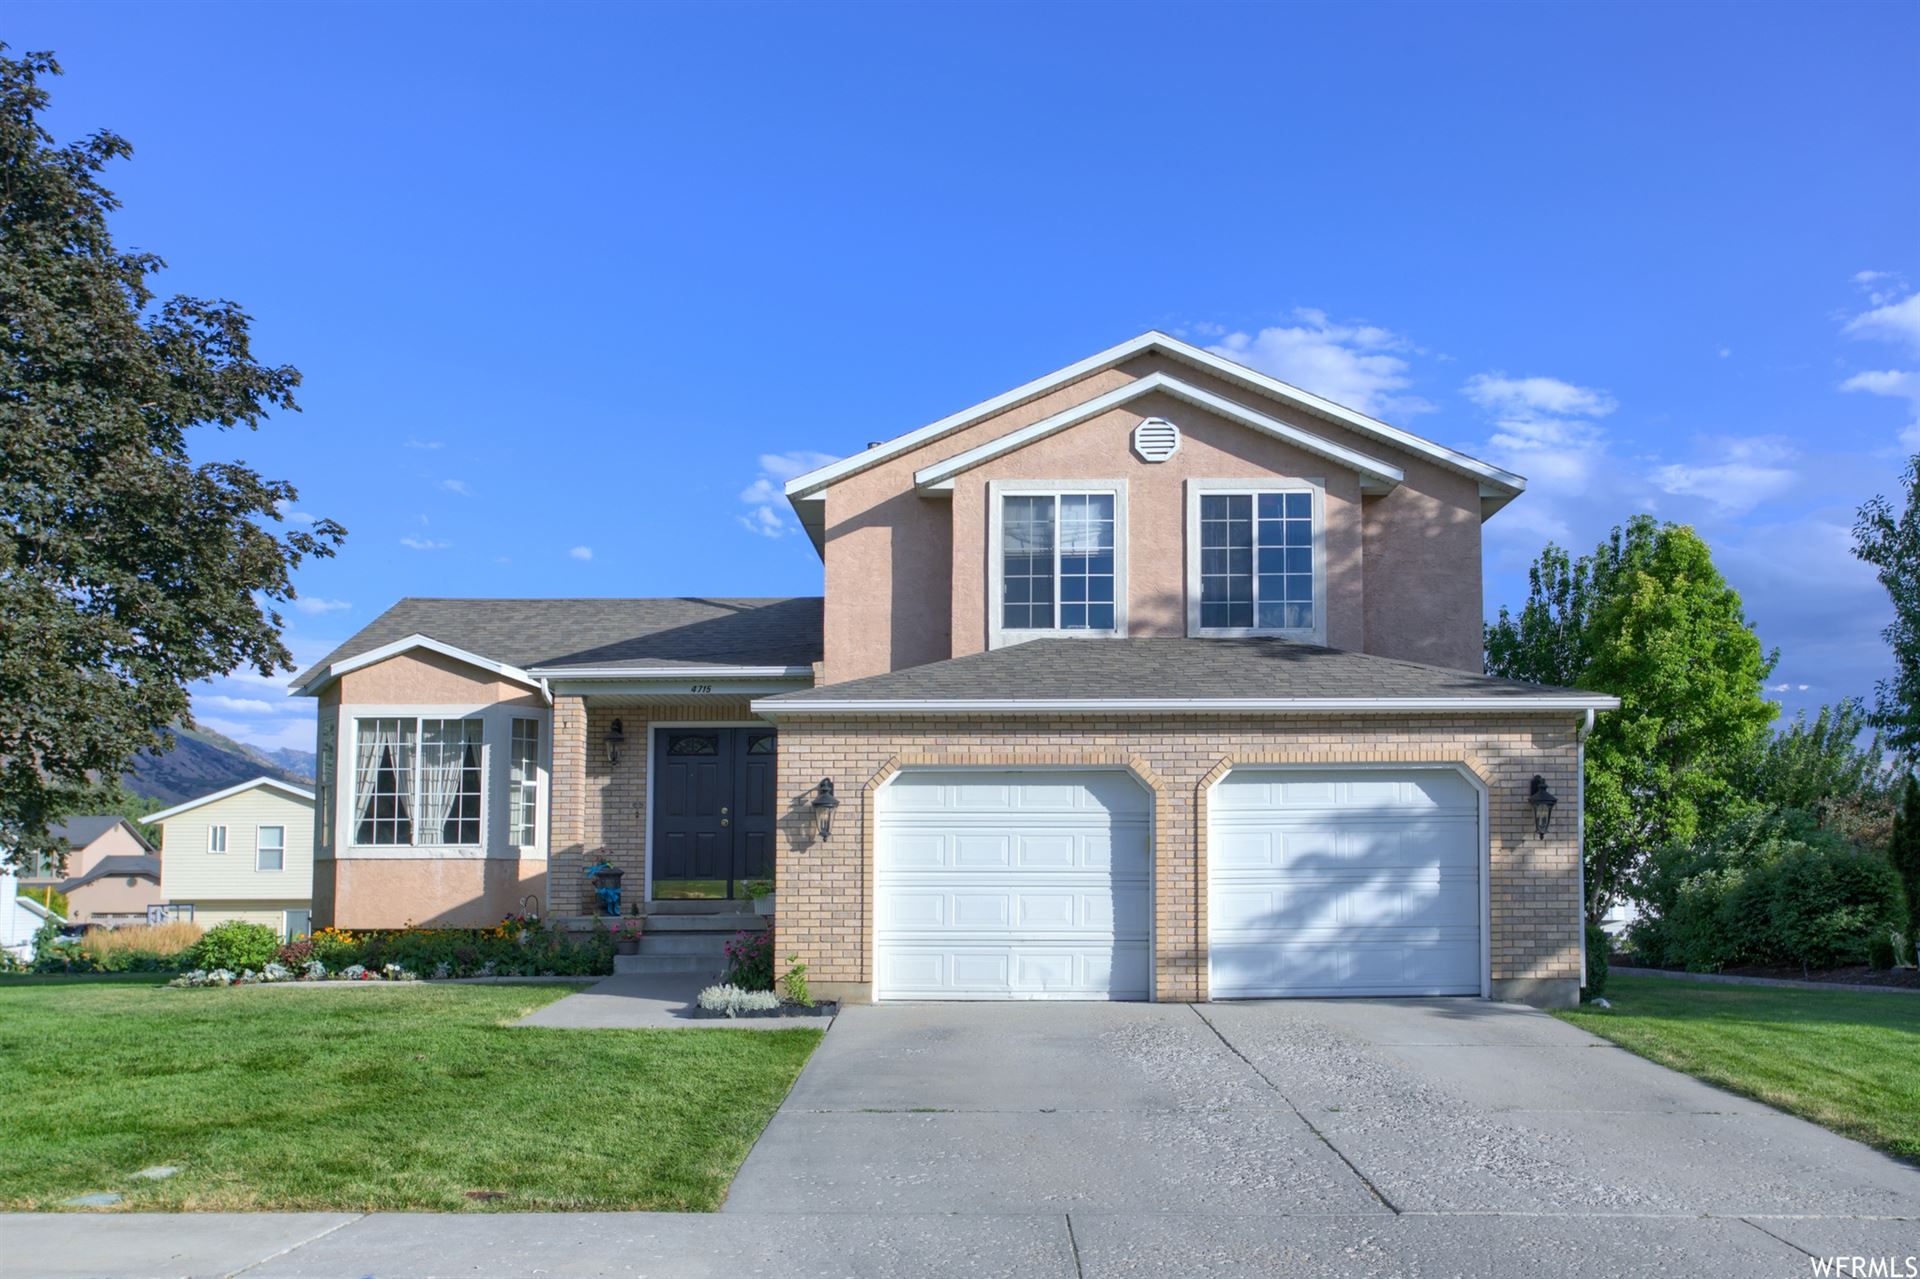 Photo of 4715 W COUNTRY CLUB DR, Highland, UT 84003 (MLS # 1757595)